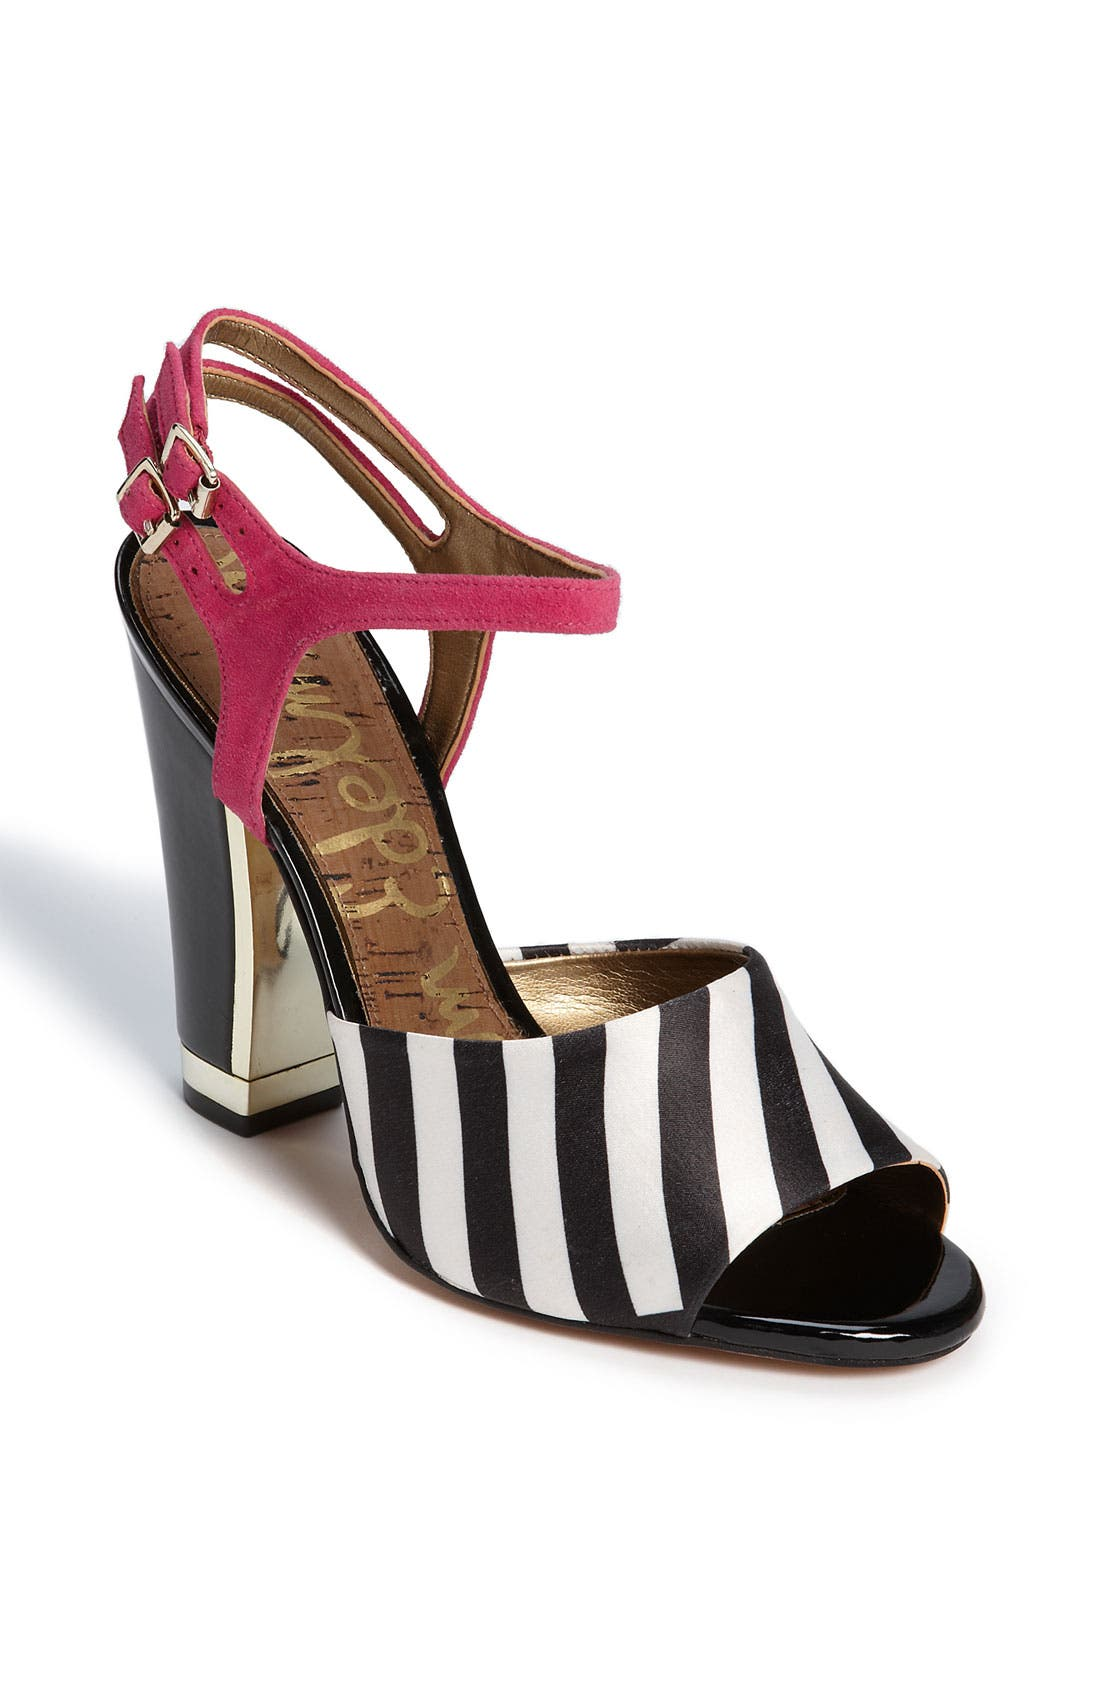 Alternate Image 1 Selected - Sam Edelman 'Odetta' Sandal